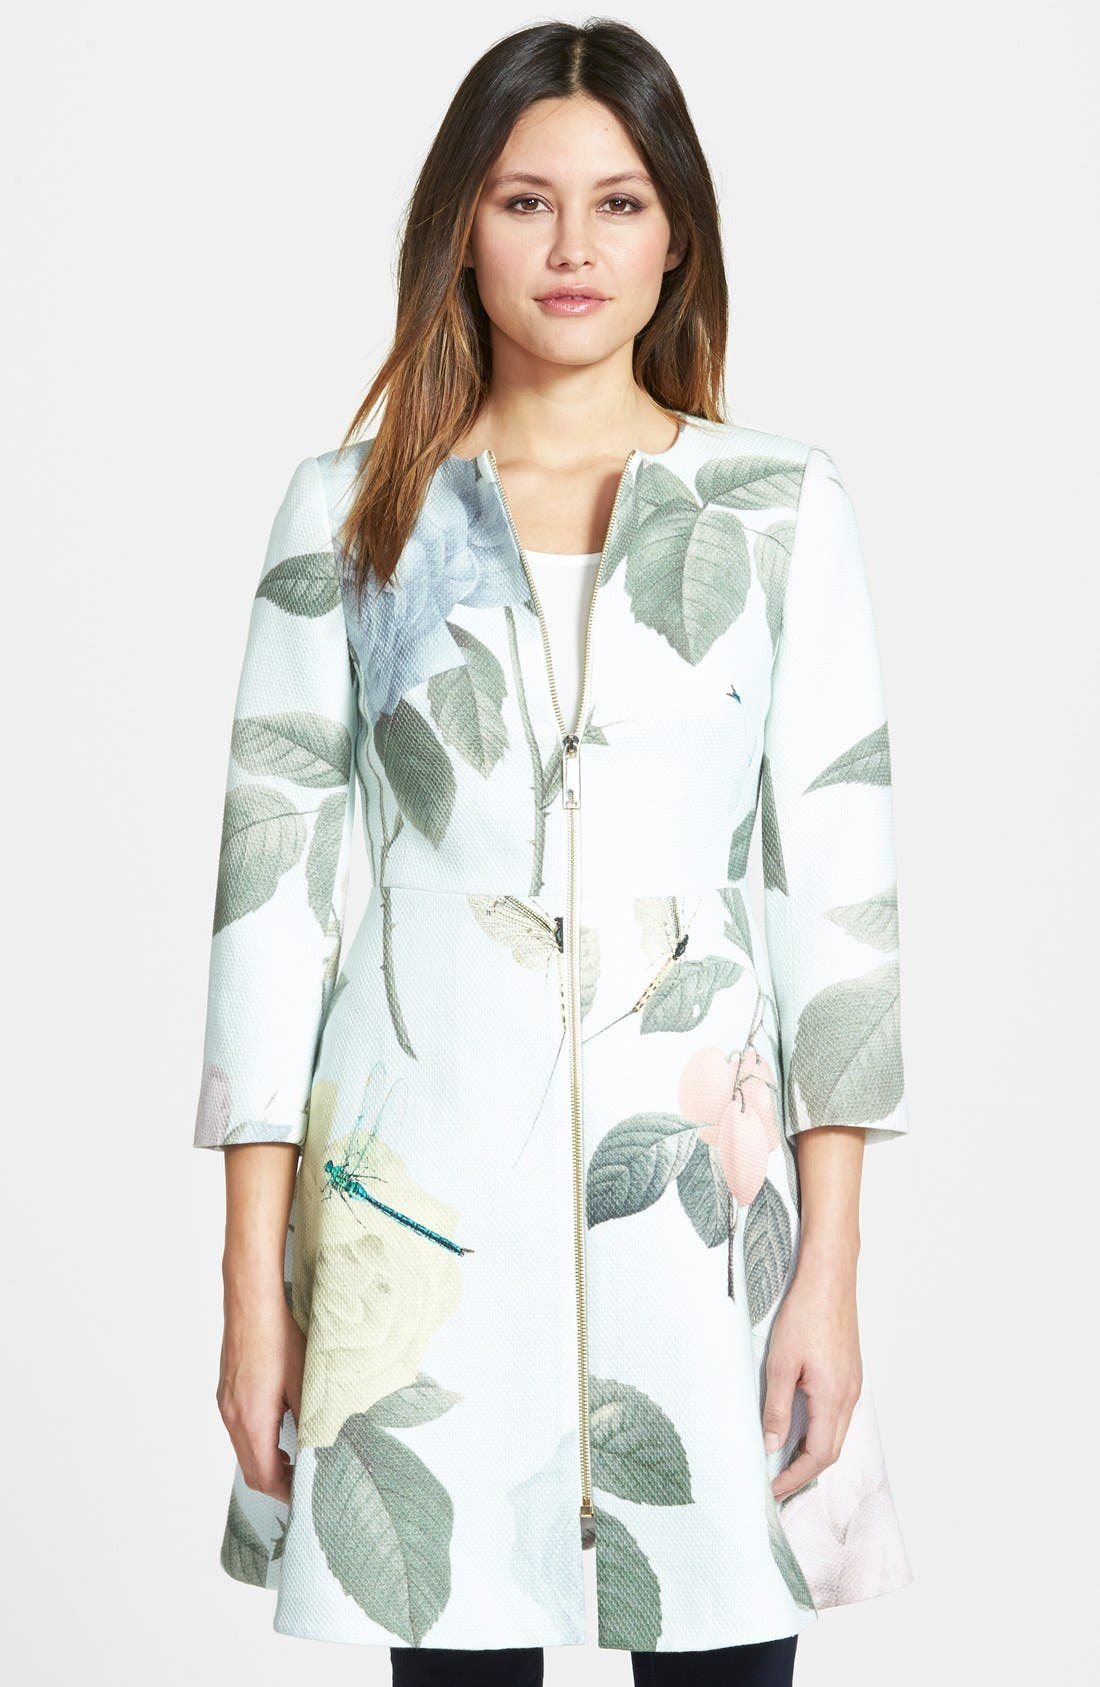 TED BAKER LONDON, Rose Print Textured Fit & Flare Jacket, Main thumbnail 1, color, 331